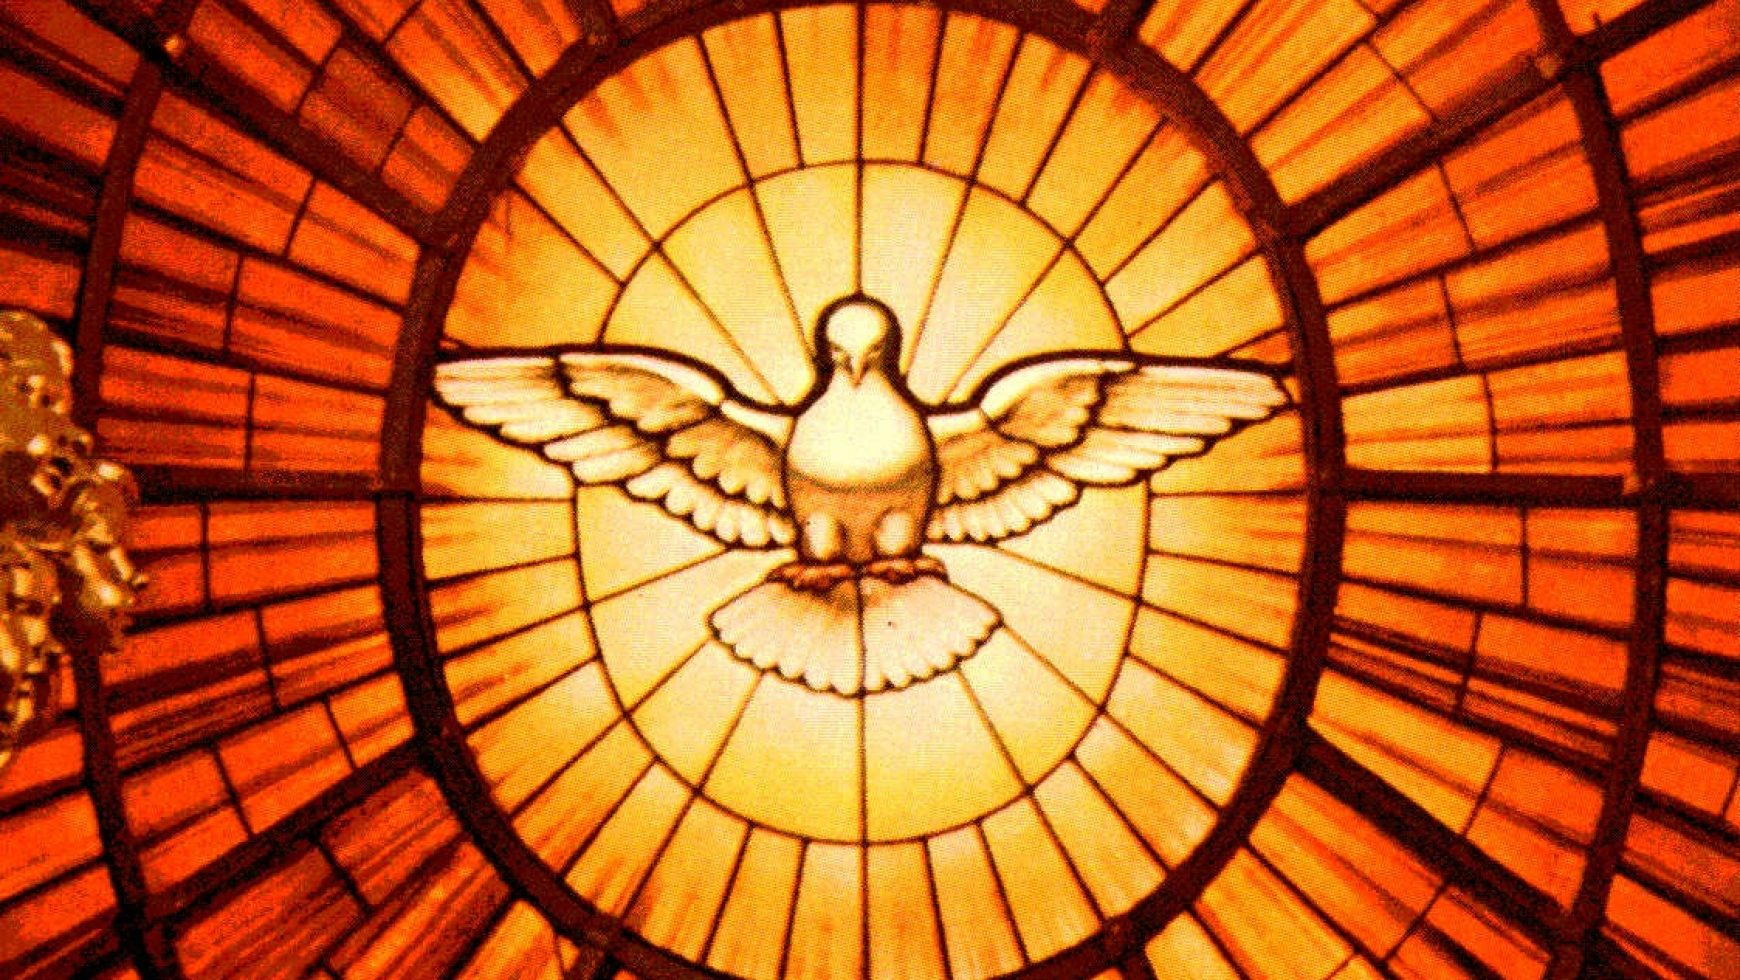 Temples of the Holy Spirit ~ Cardinal Newman – by Fr. John Henry Hanson, O.Praem